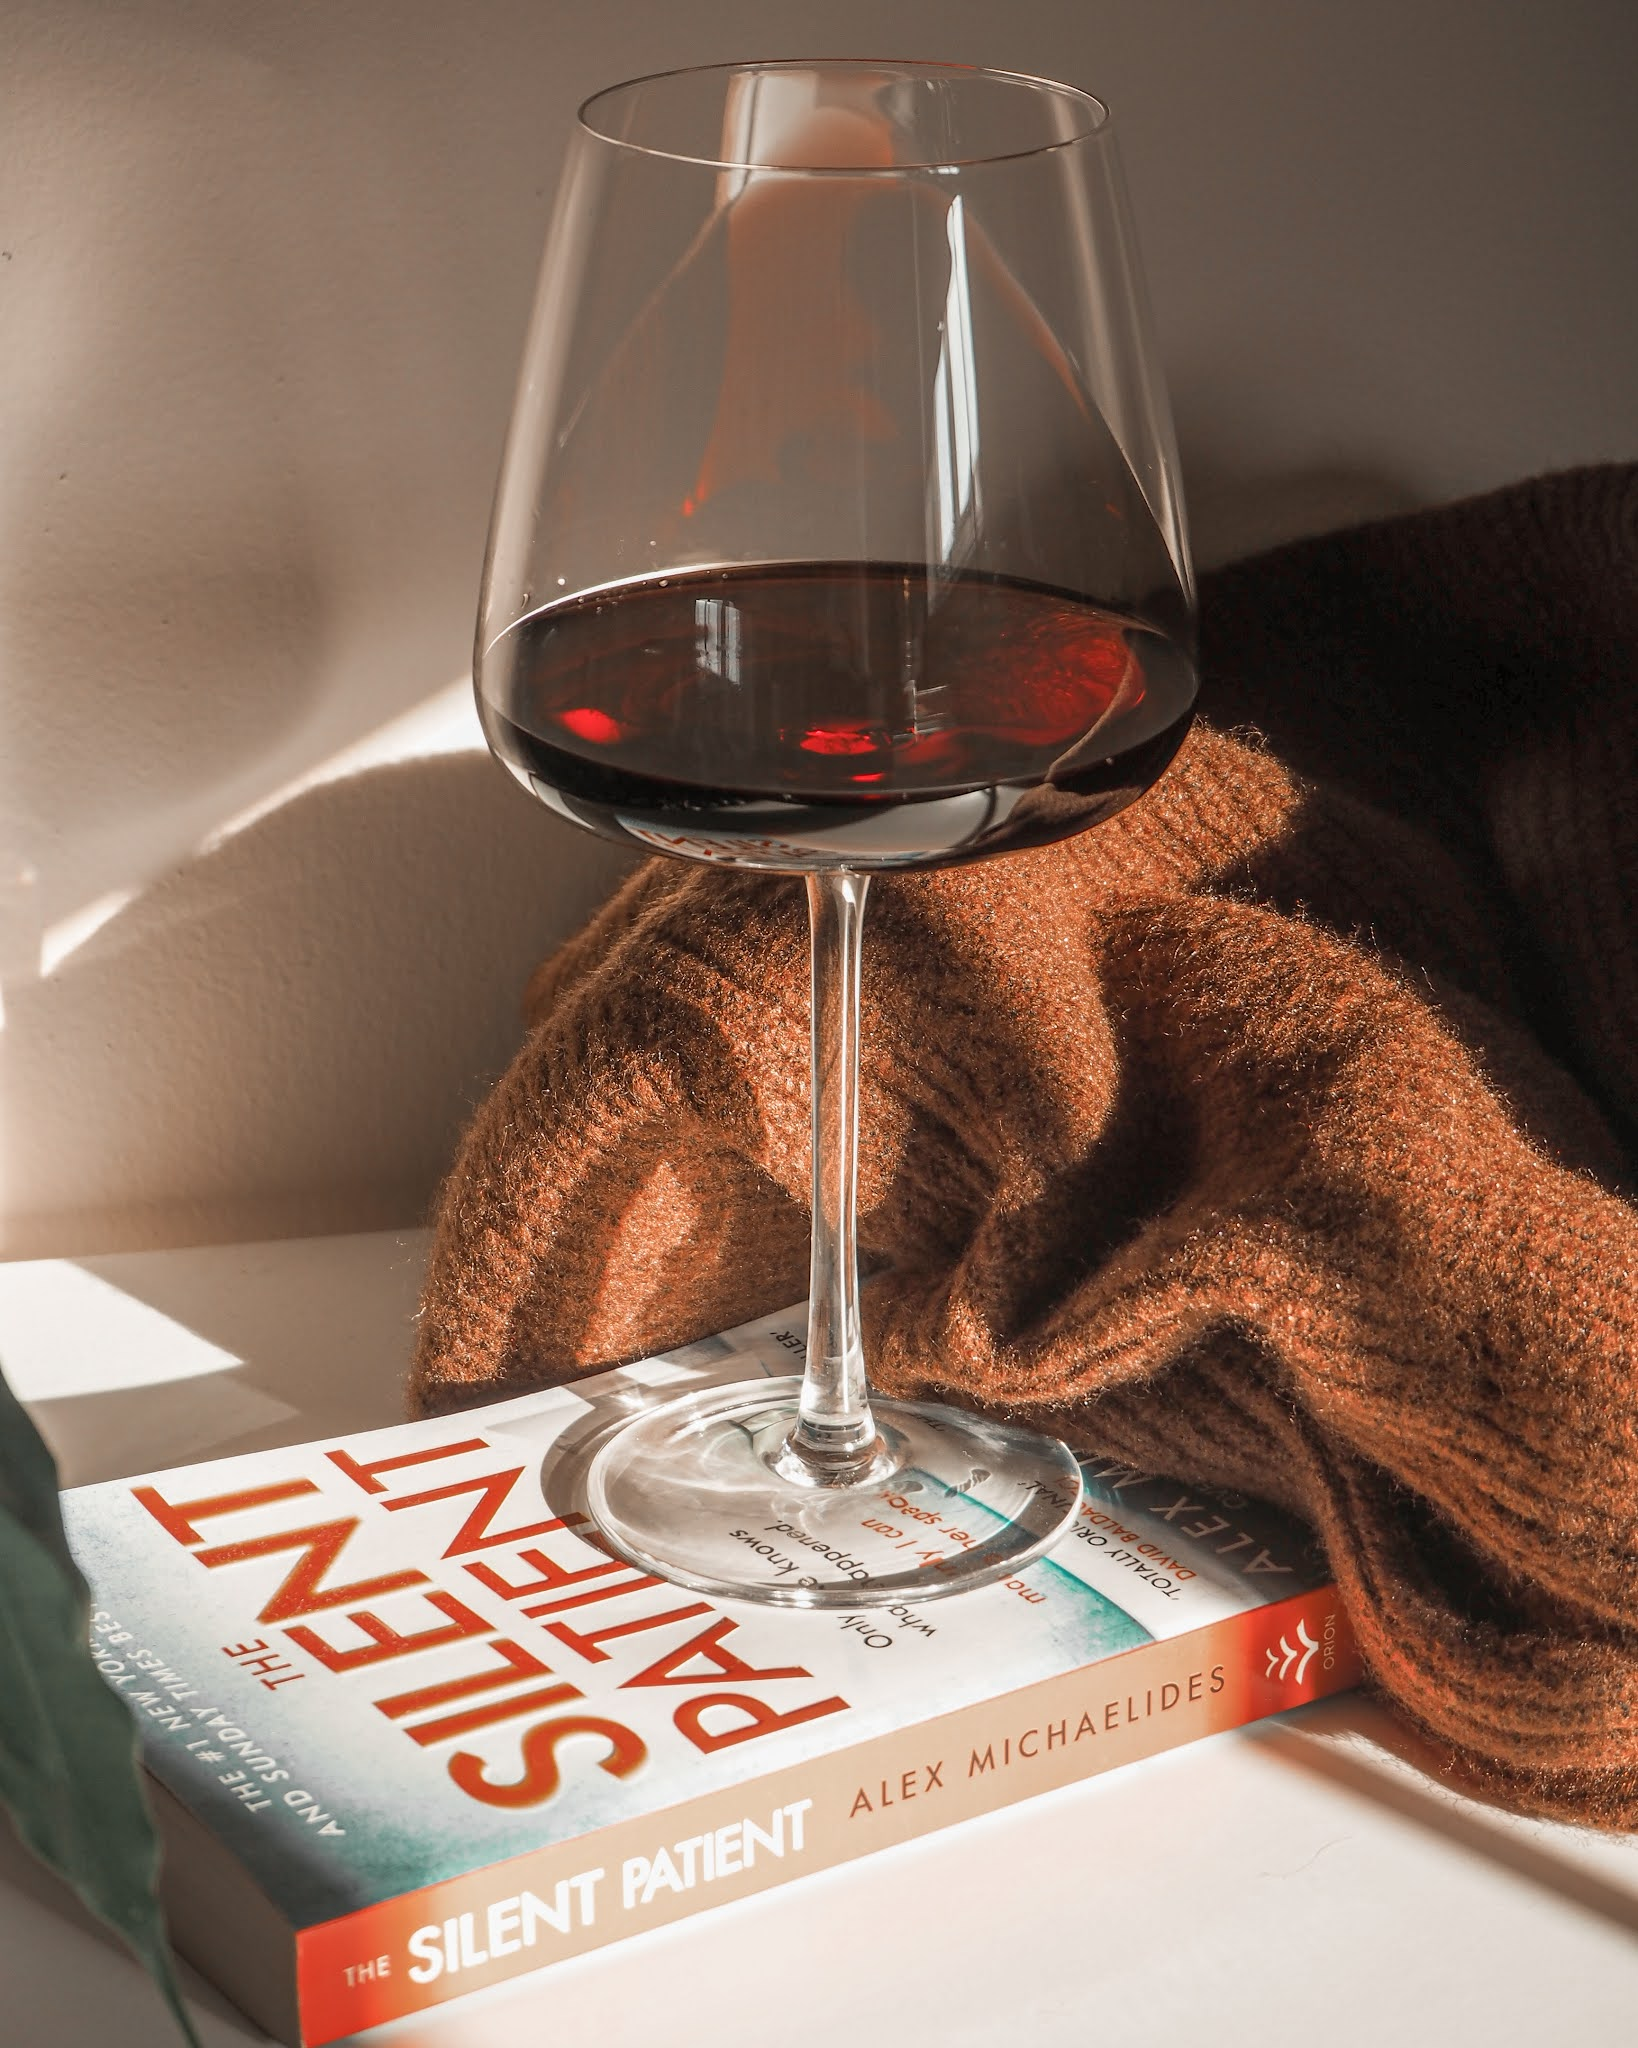 The Silent Patient book and glass of red wine